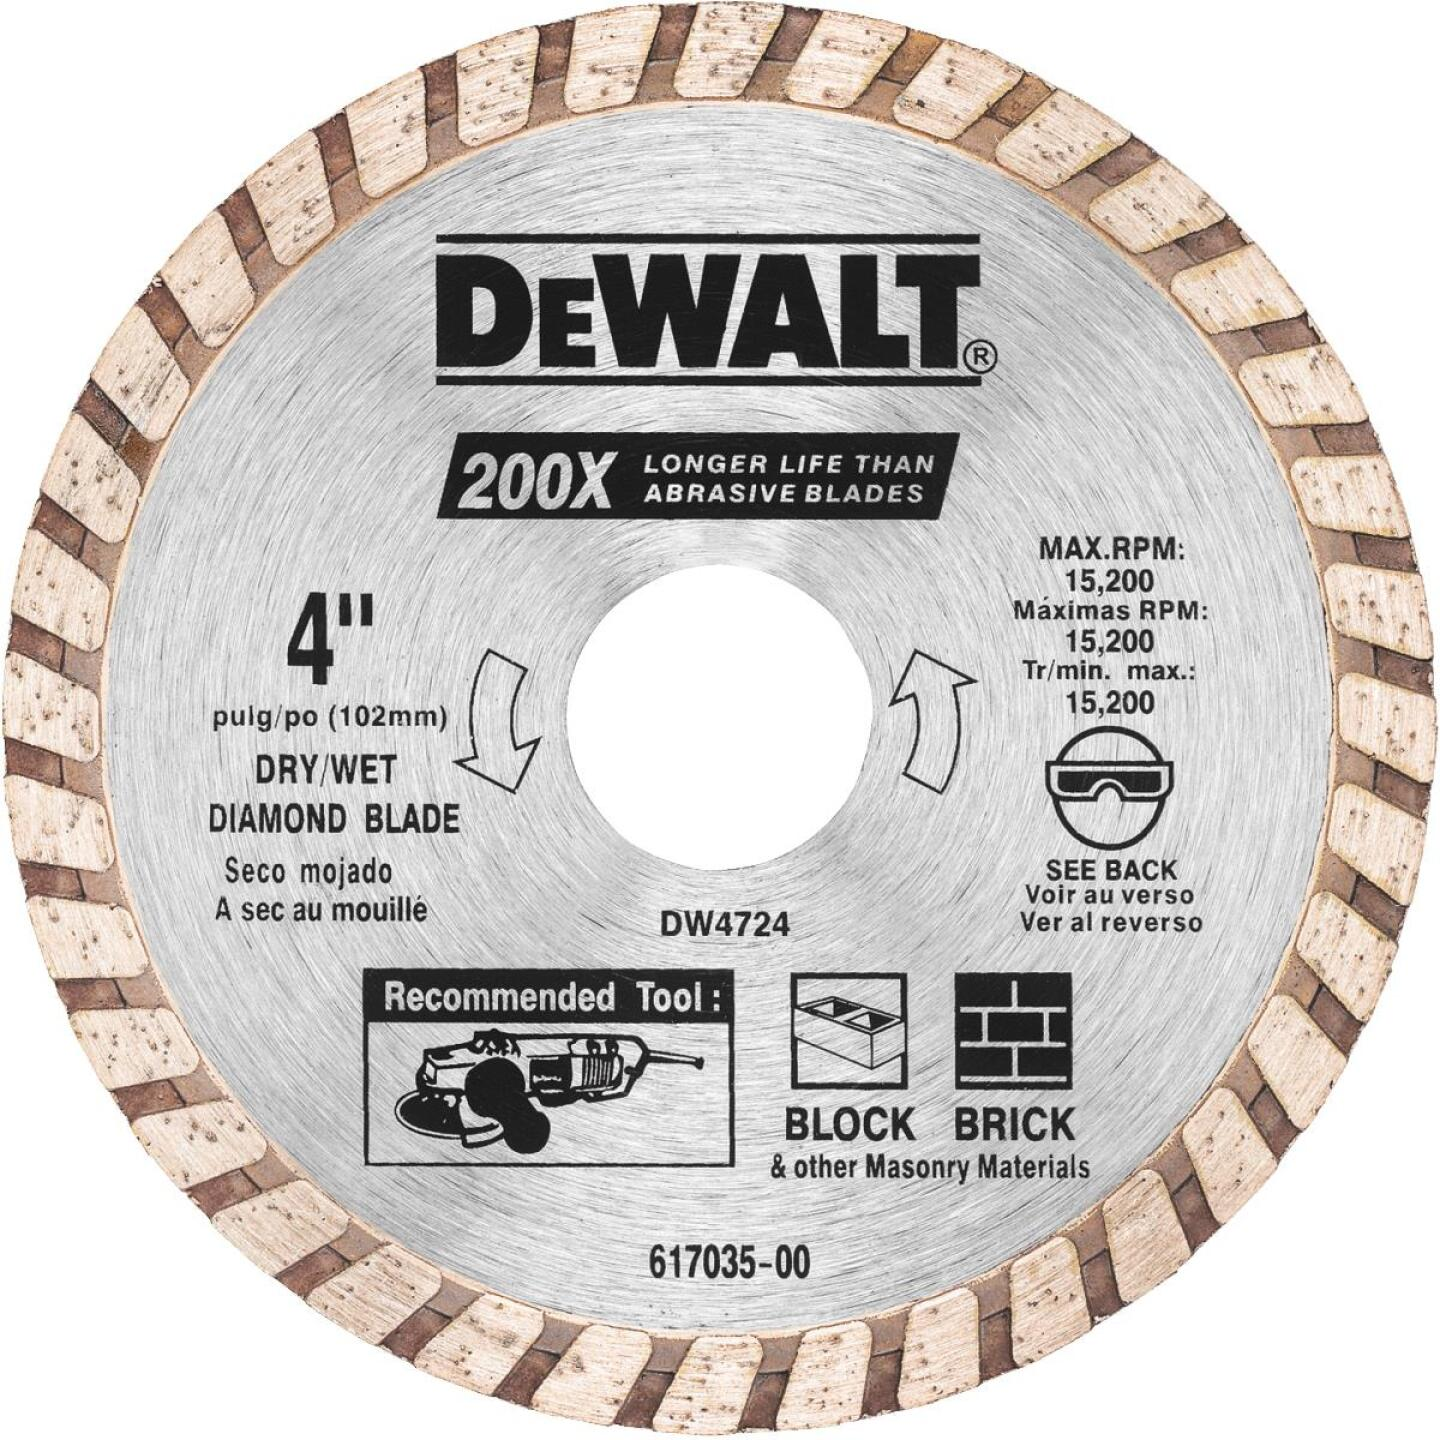 DeWalt High Performance 4 In. Turbo Rim Dry/Wet Cut Diamond Blade Image 1